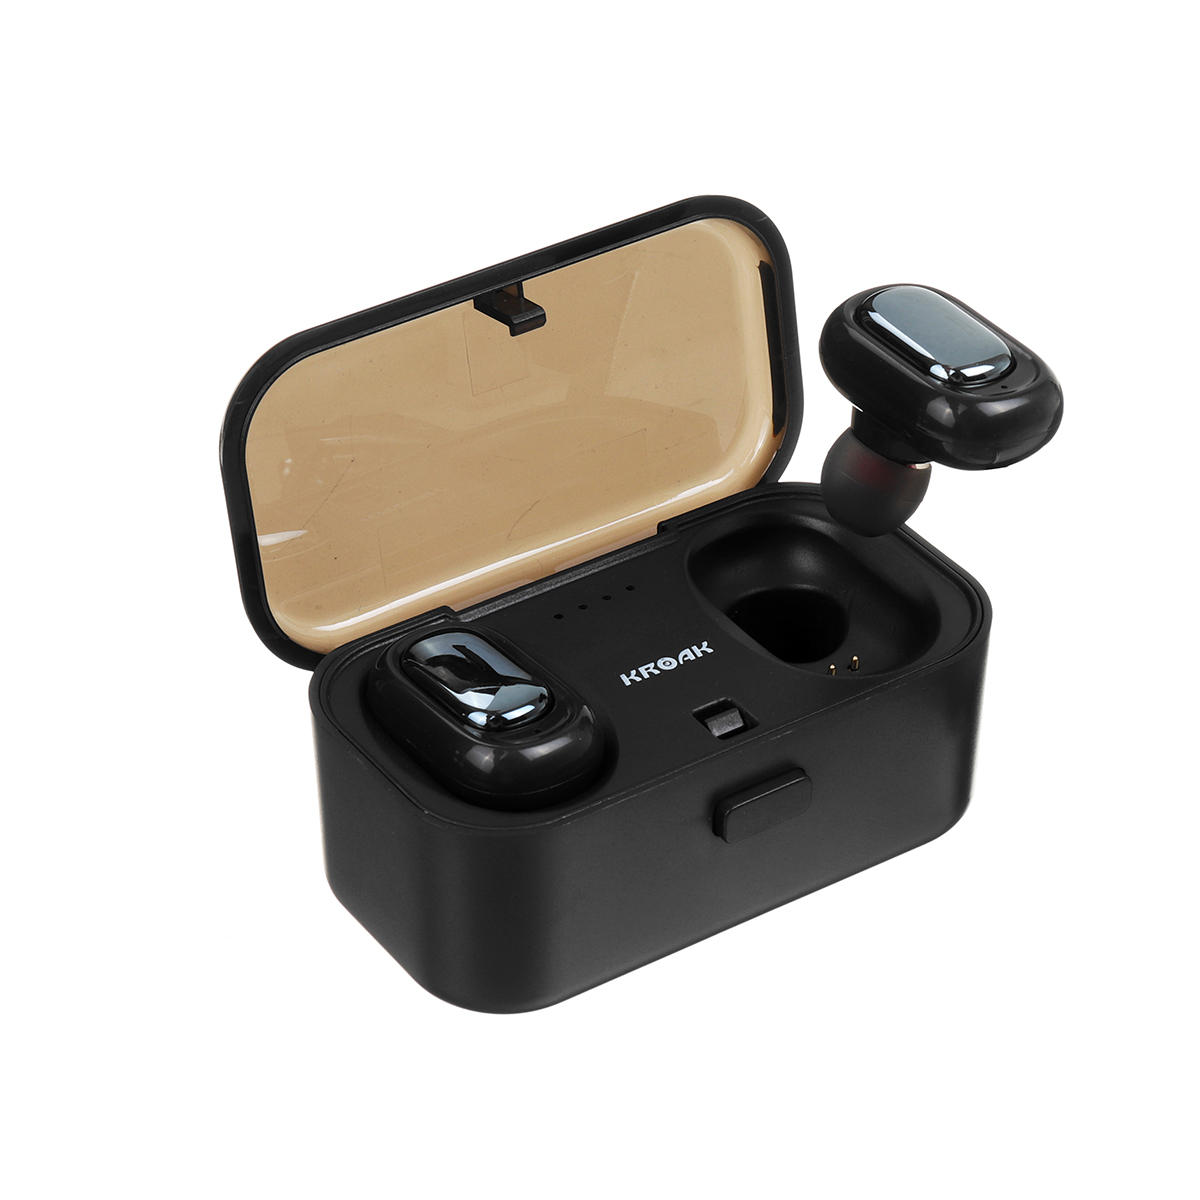 Box Bluetooth Mini Tws True Wireless Bluetooth Earphone Hifi Stereo Noise Cancelling Waterproof Headphone With 800mah Charging Box